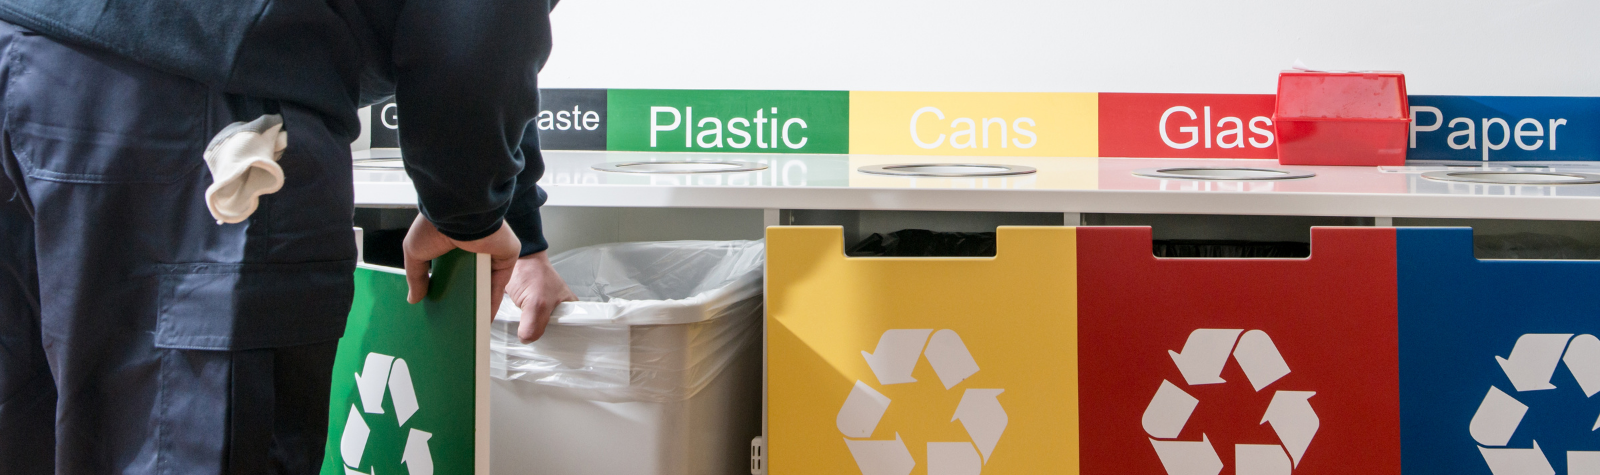 Easy Ways to Recycle Around the Office